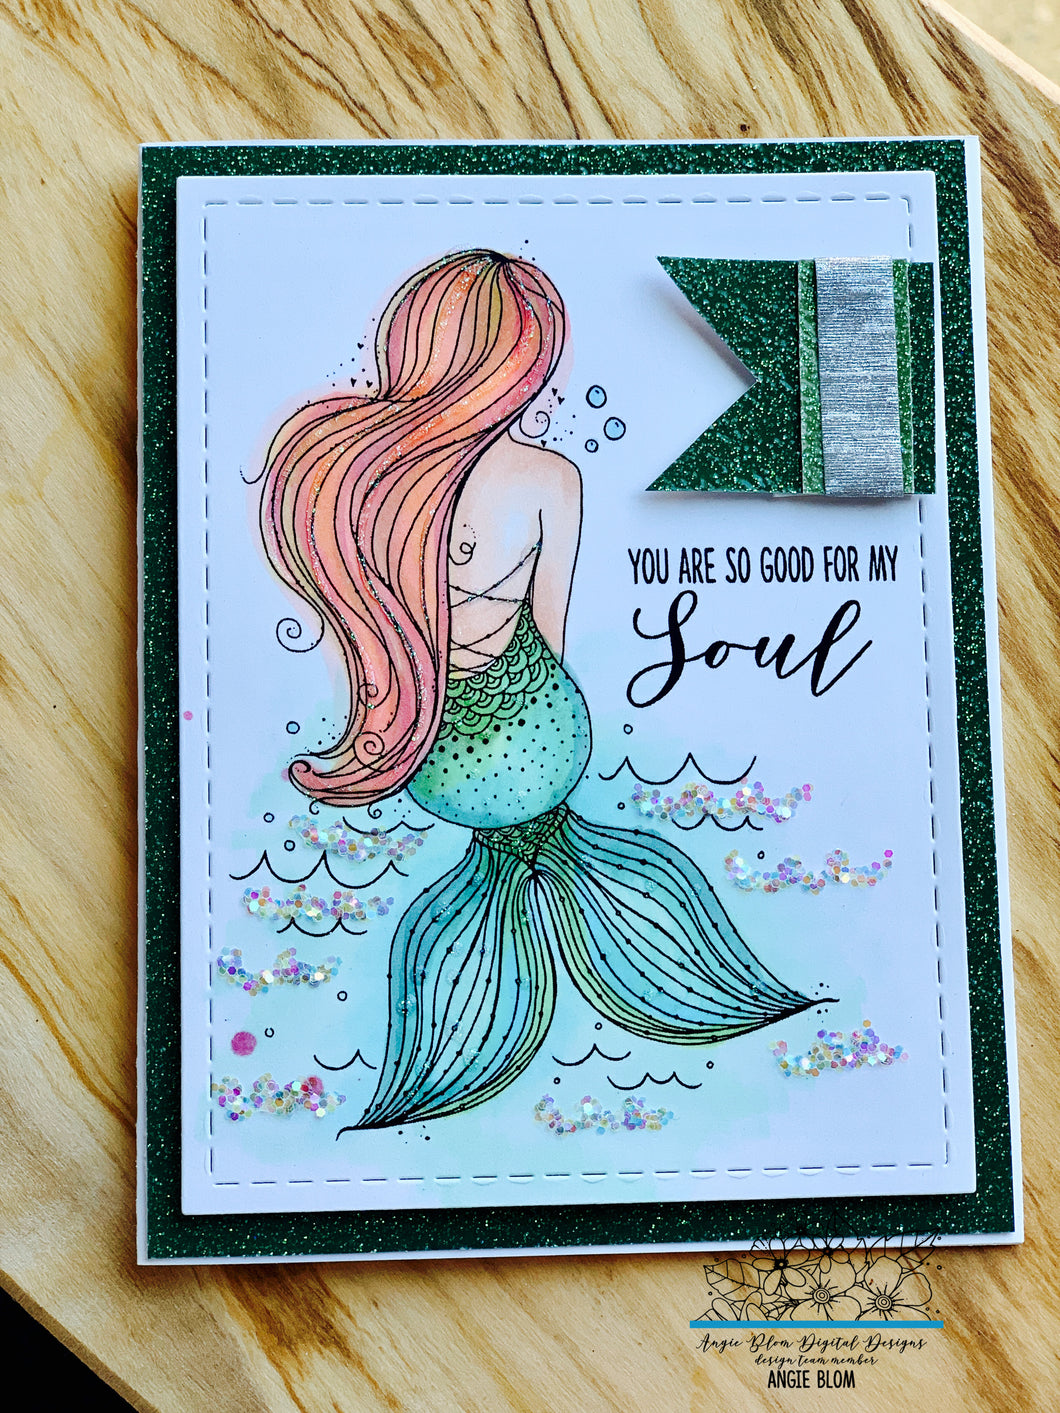 GOOD FOR THE SOUL (mermaid)